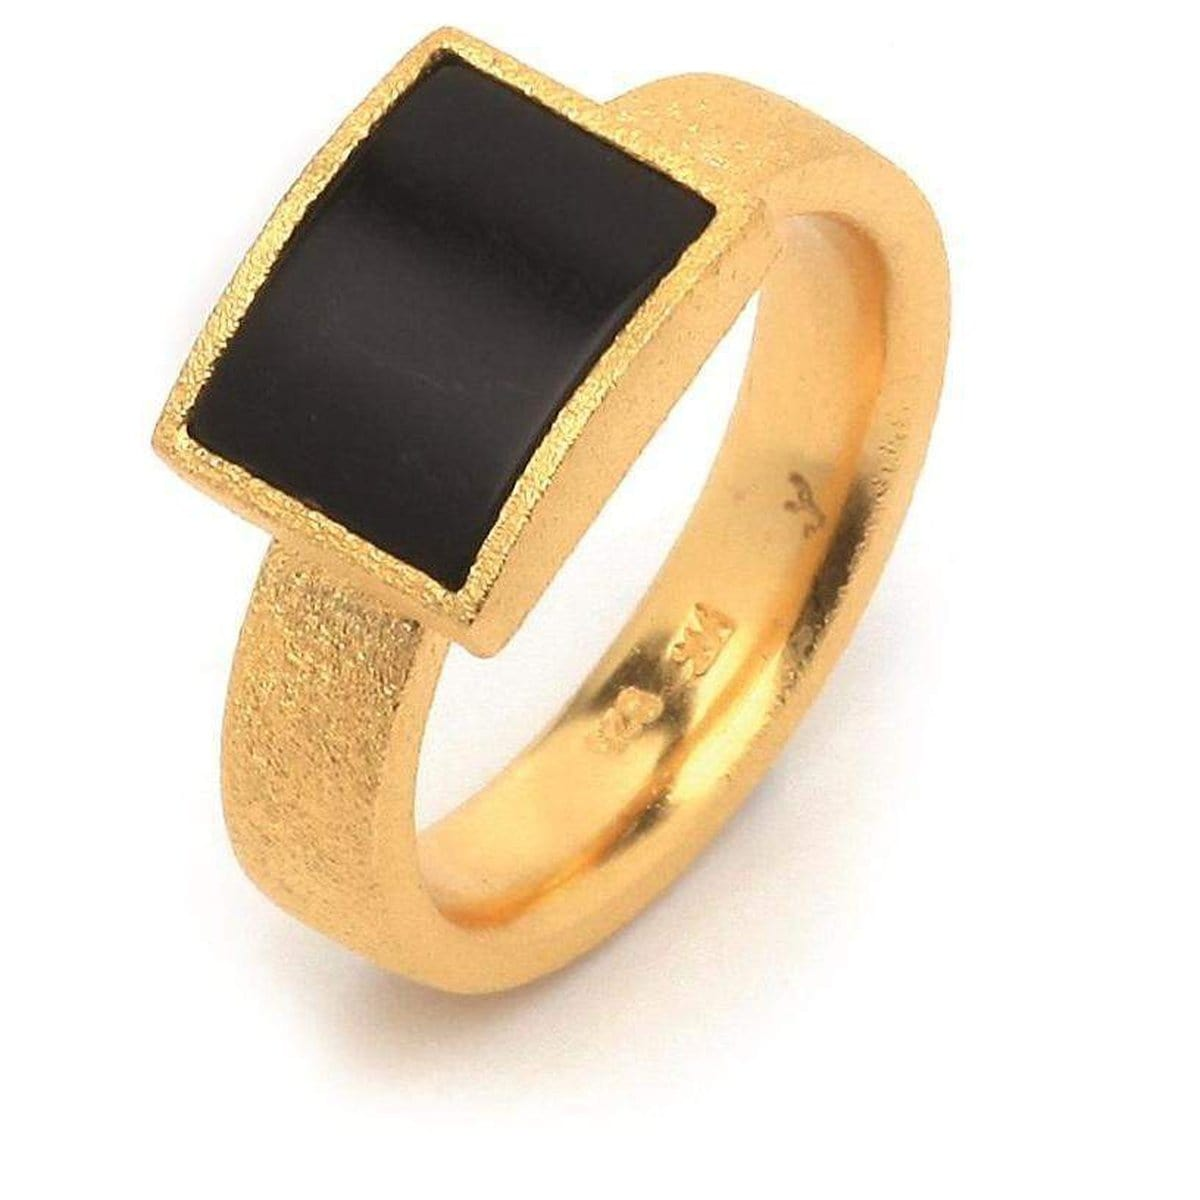 Colano Onyx Ring - 52550896-Bernd Wolf-Renee Taylor Gallery